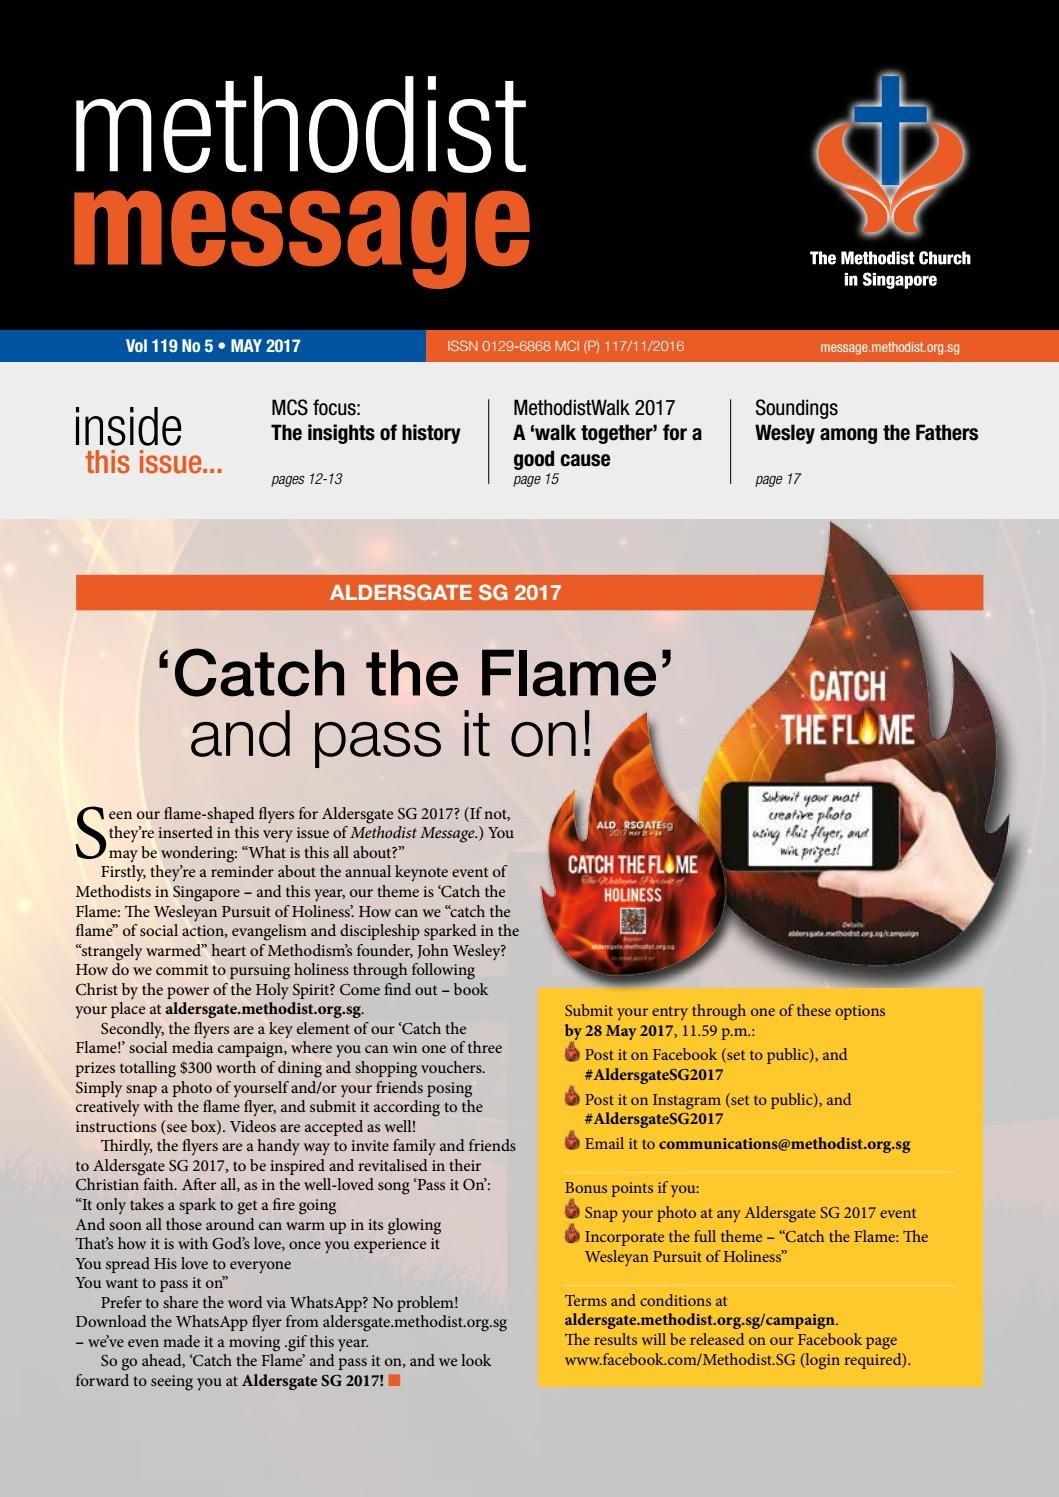 Methodist Message May 2017 Issue Messages, Singapore